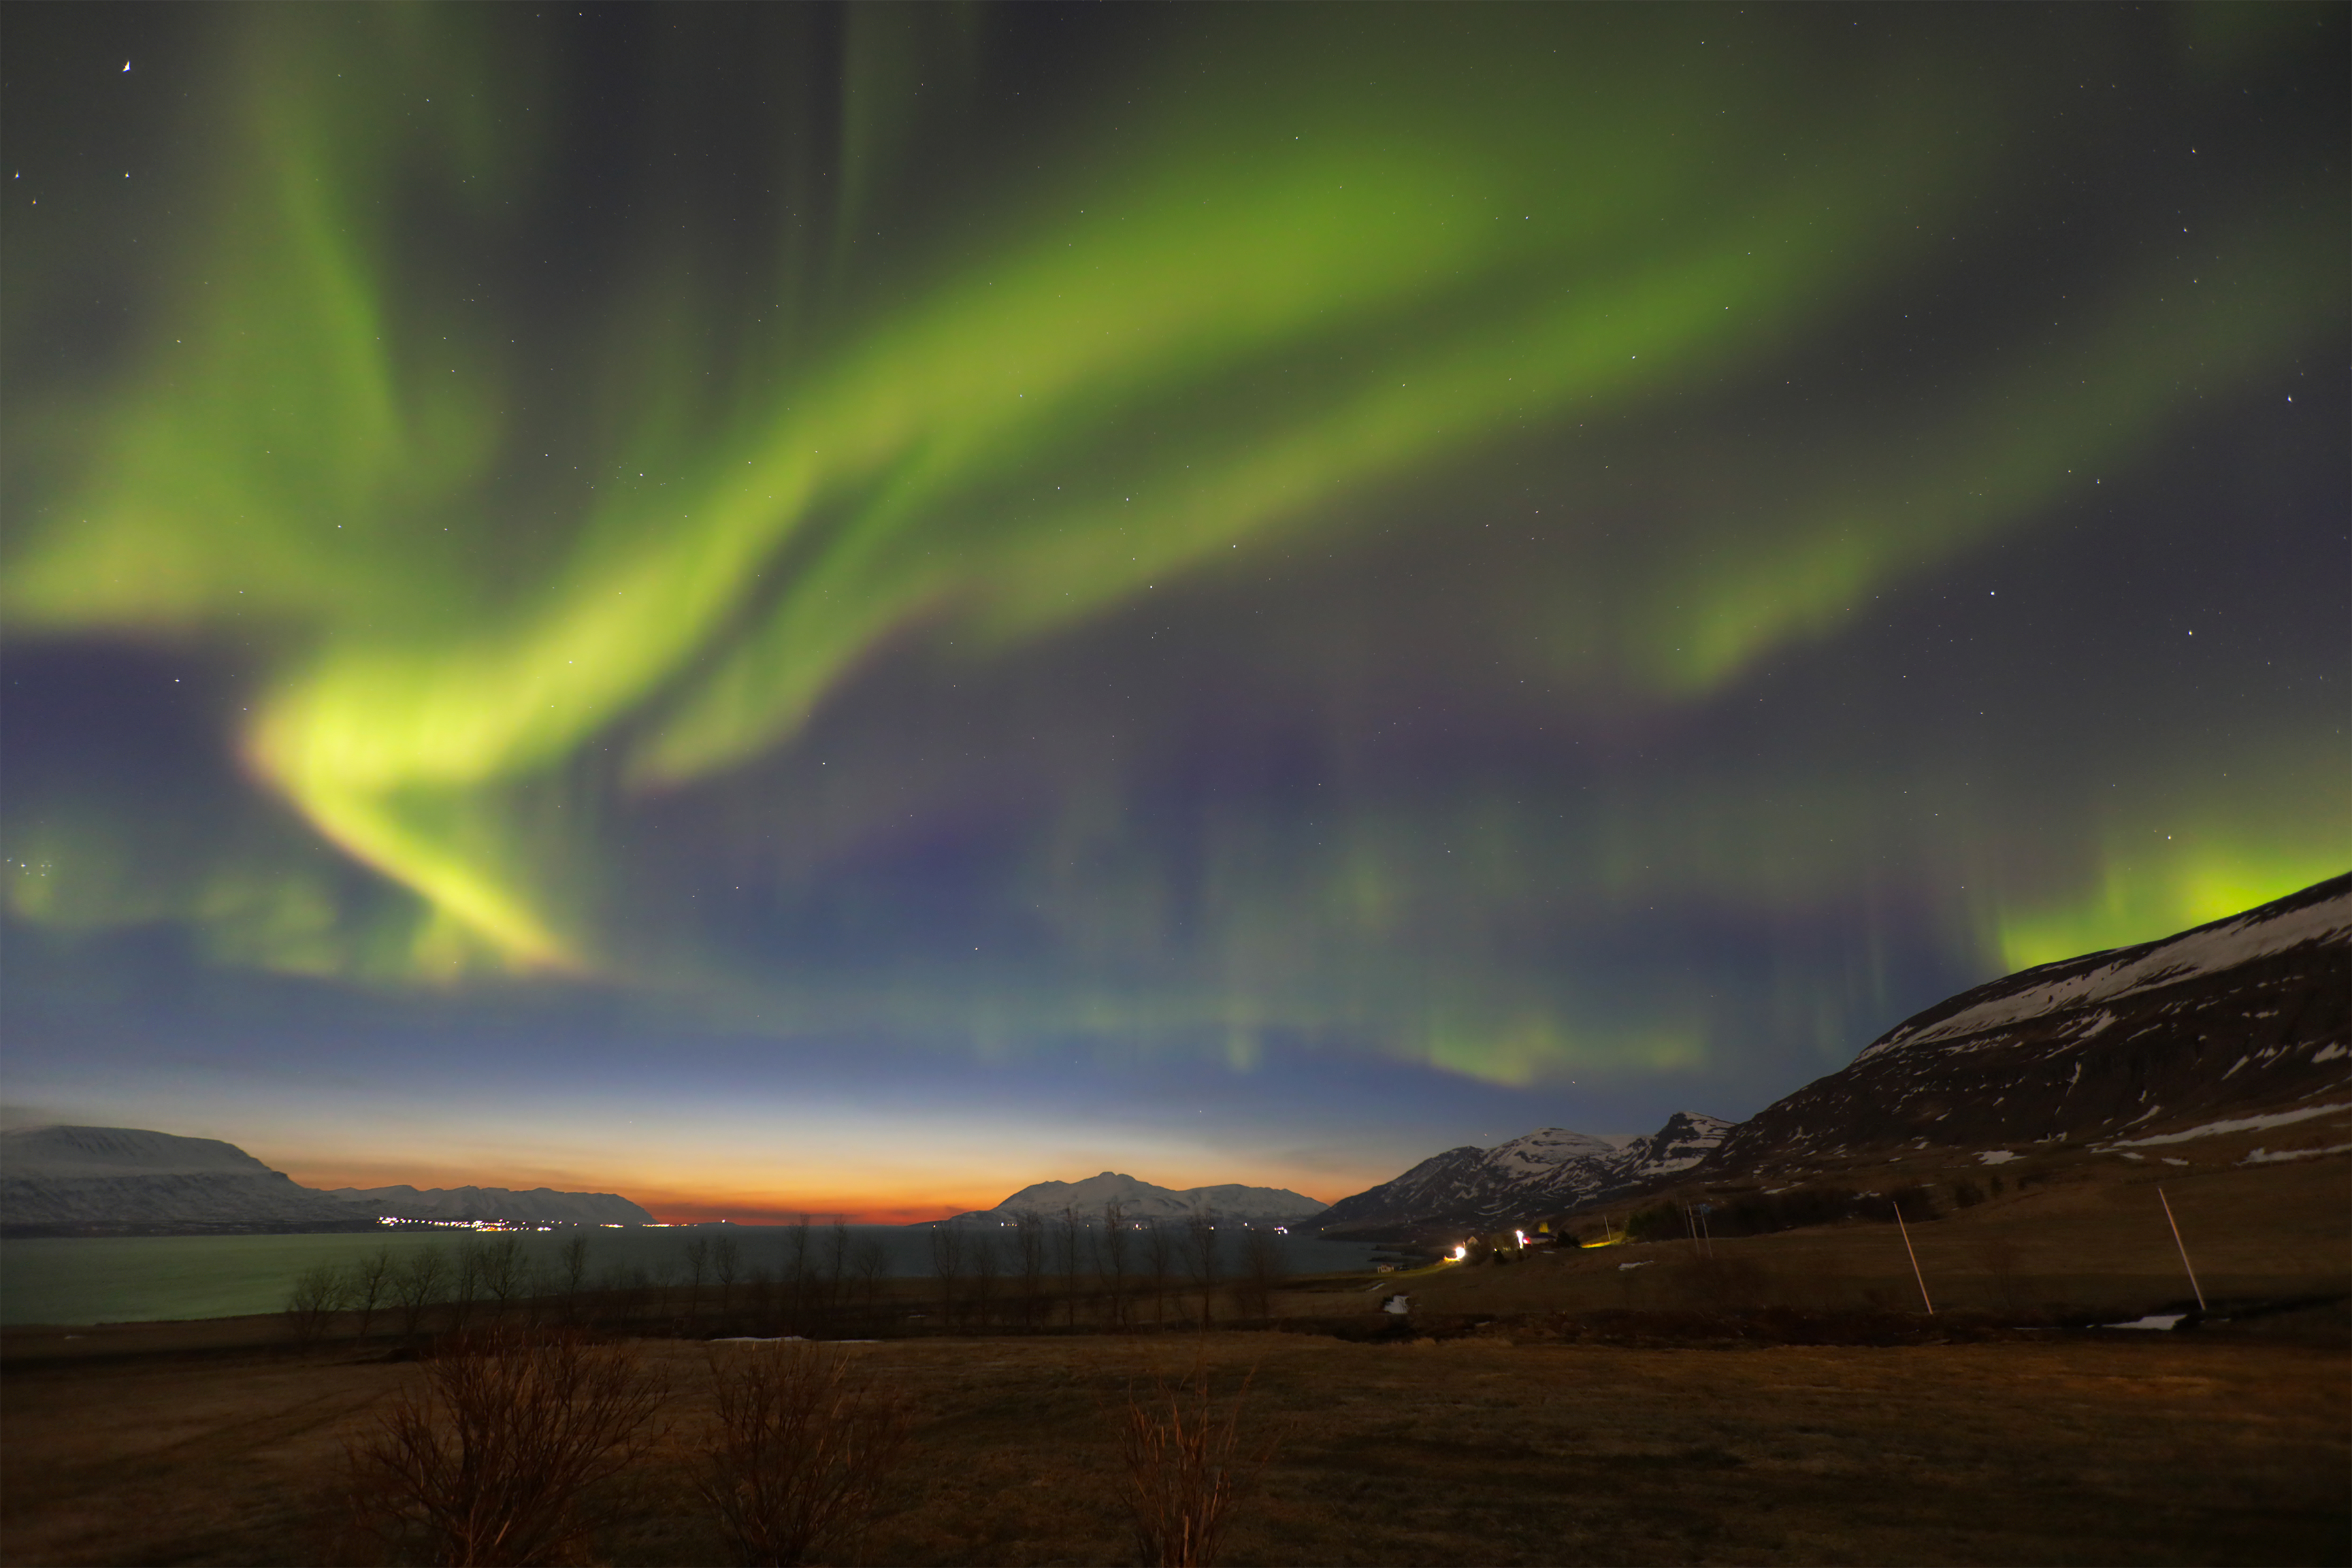 The aurora borealis from Iceland